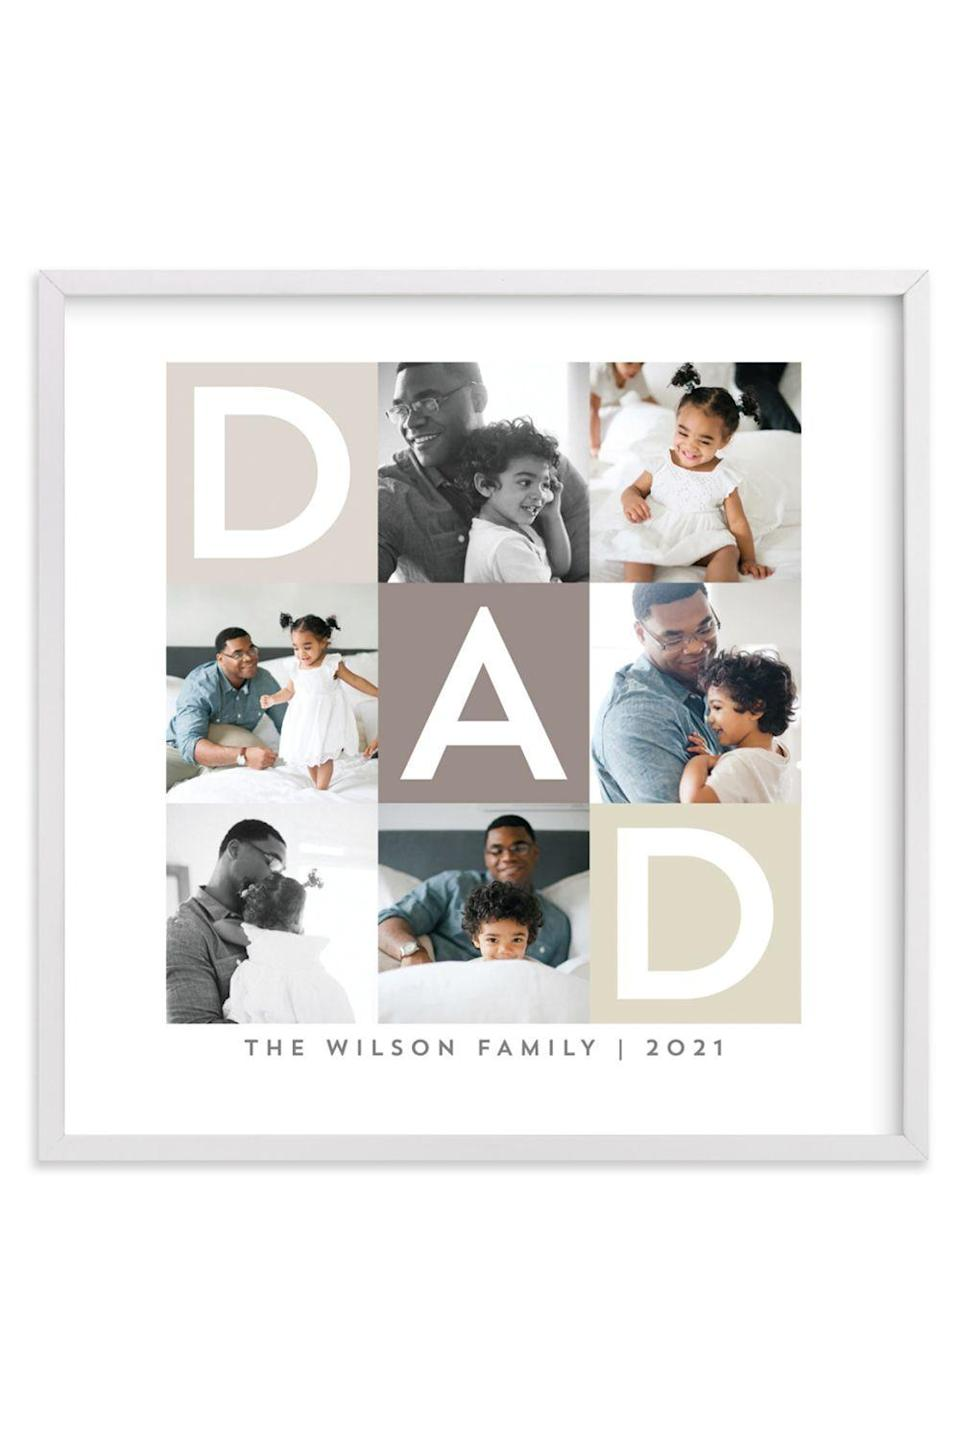 """<p><strong>Minted</strong></p><p>minted.com</p><p><strong>$29.00</strong></p><p><a href=""""https://go.redirectingat.com?id=74968X1596630&url=https%3A%2F%2Fwww.minted.com%2Fproduct%2Fphoto-art%2FMIN-MUR-GCP%2Fbest-dad-ever-boxes&sref=https%3A%2F%2Fwww.oprahdaily.com%2Flife%2Fg26961897%2Fgifts-for-new-dads%2F"""" rel=""""nofollow noopener"""" target=""""_blank"""" data-ylk=""""slk:Shop Now"""" class=""""link rapid-noclick-resp"""">Shop Now</a></p><p>One thing every parent knows for sure: You can never have too many photos of your little ones—which is exactly why he'll love this thoughtful gift. Simply upload six of his favorite images and Minted will turn them into a custom piece of art that he'll treasure for years to come.<br></p>"""